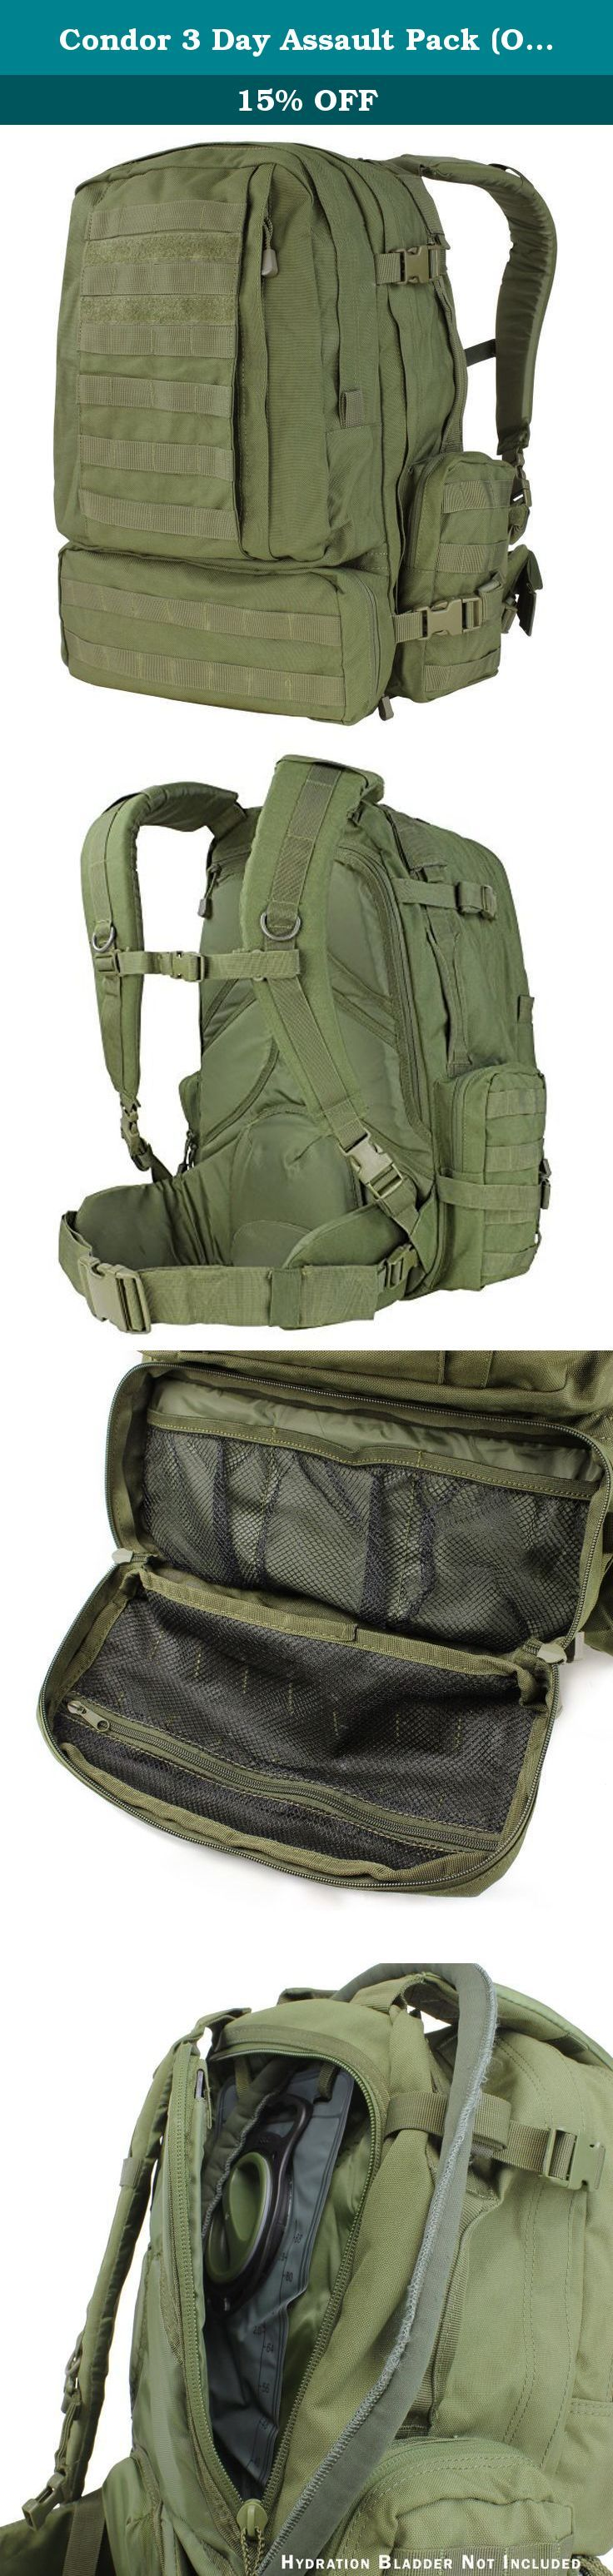 Condor 3 Day Assault Pack (Olive Drab, 3038-Cubic Inch). Condor Outdoor Products, Inc specialize in tactical vest, plate carrier, modular pouches, packs...etc. With over 20 years of experience in the tactical/outdoor gear industry, Condor offers all the essential gear for any mission while saving you money.